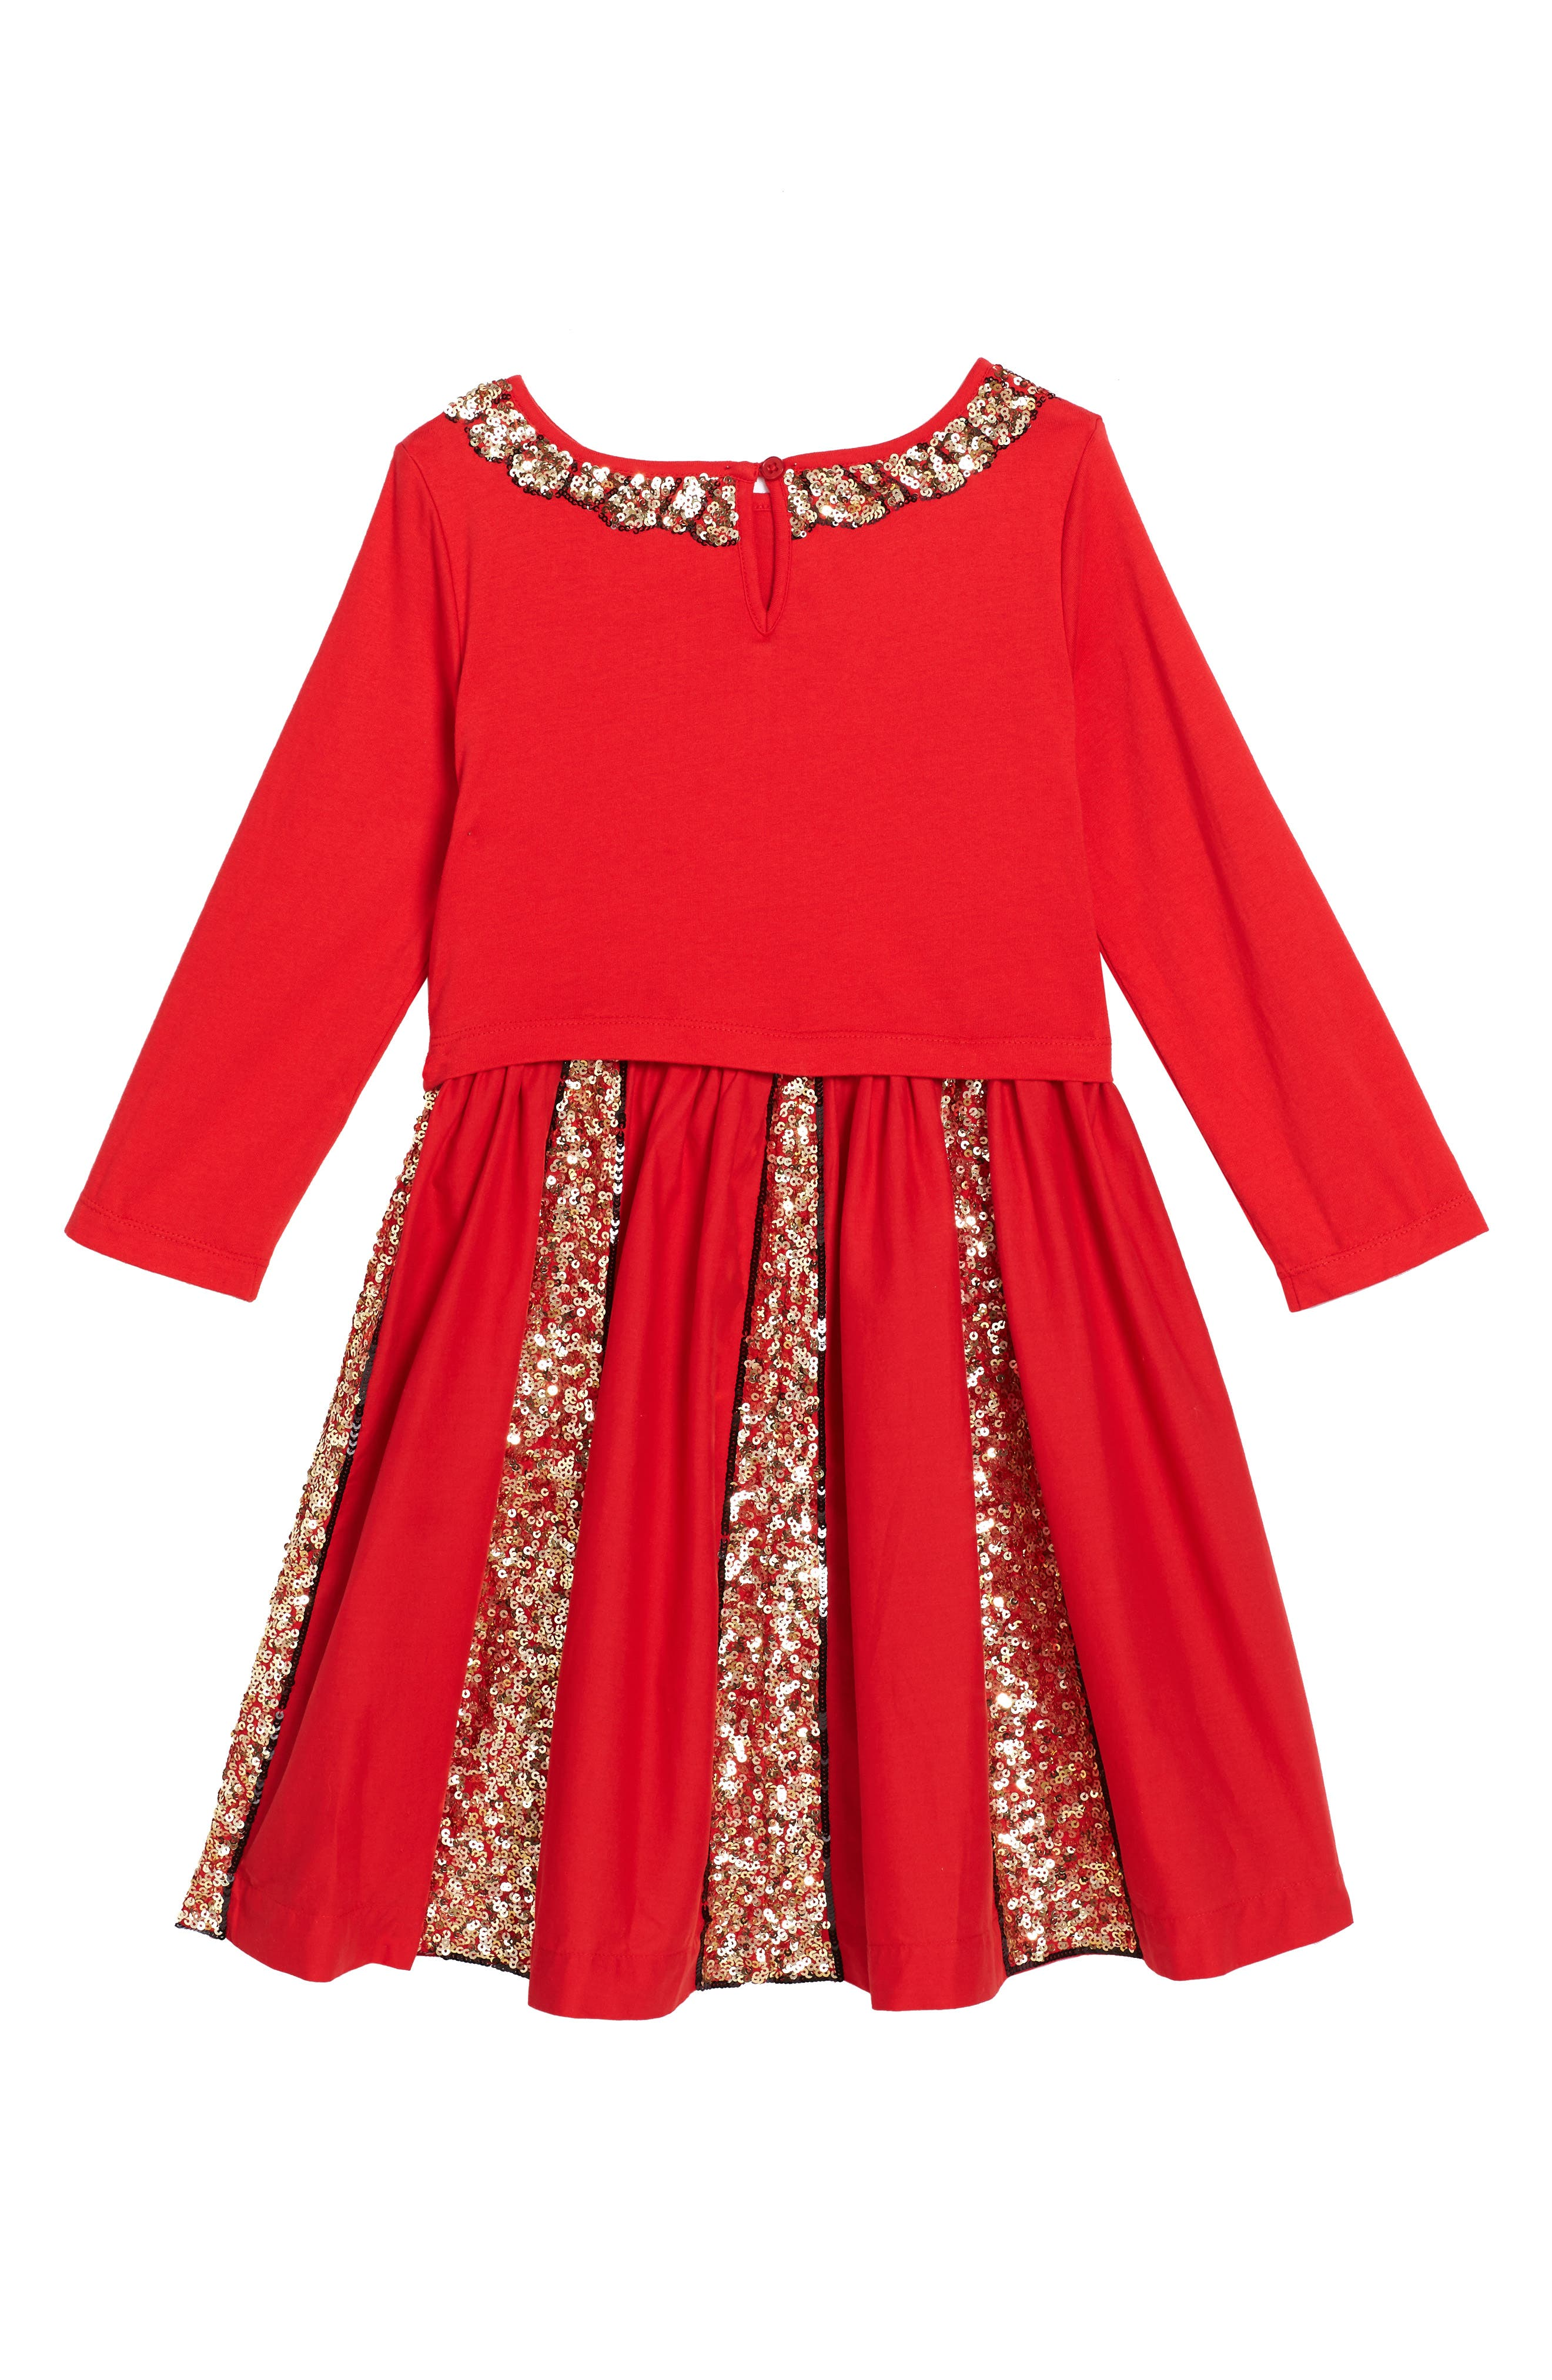 Sequin Skater Dress,                             Alternate thumbnail 2, color,                             Ladybird Red Red